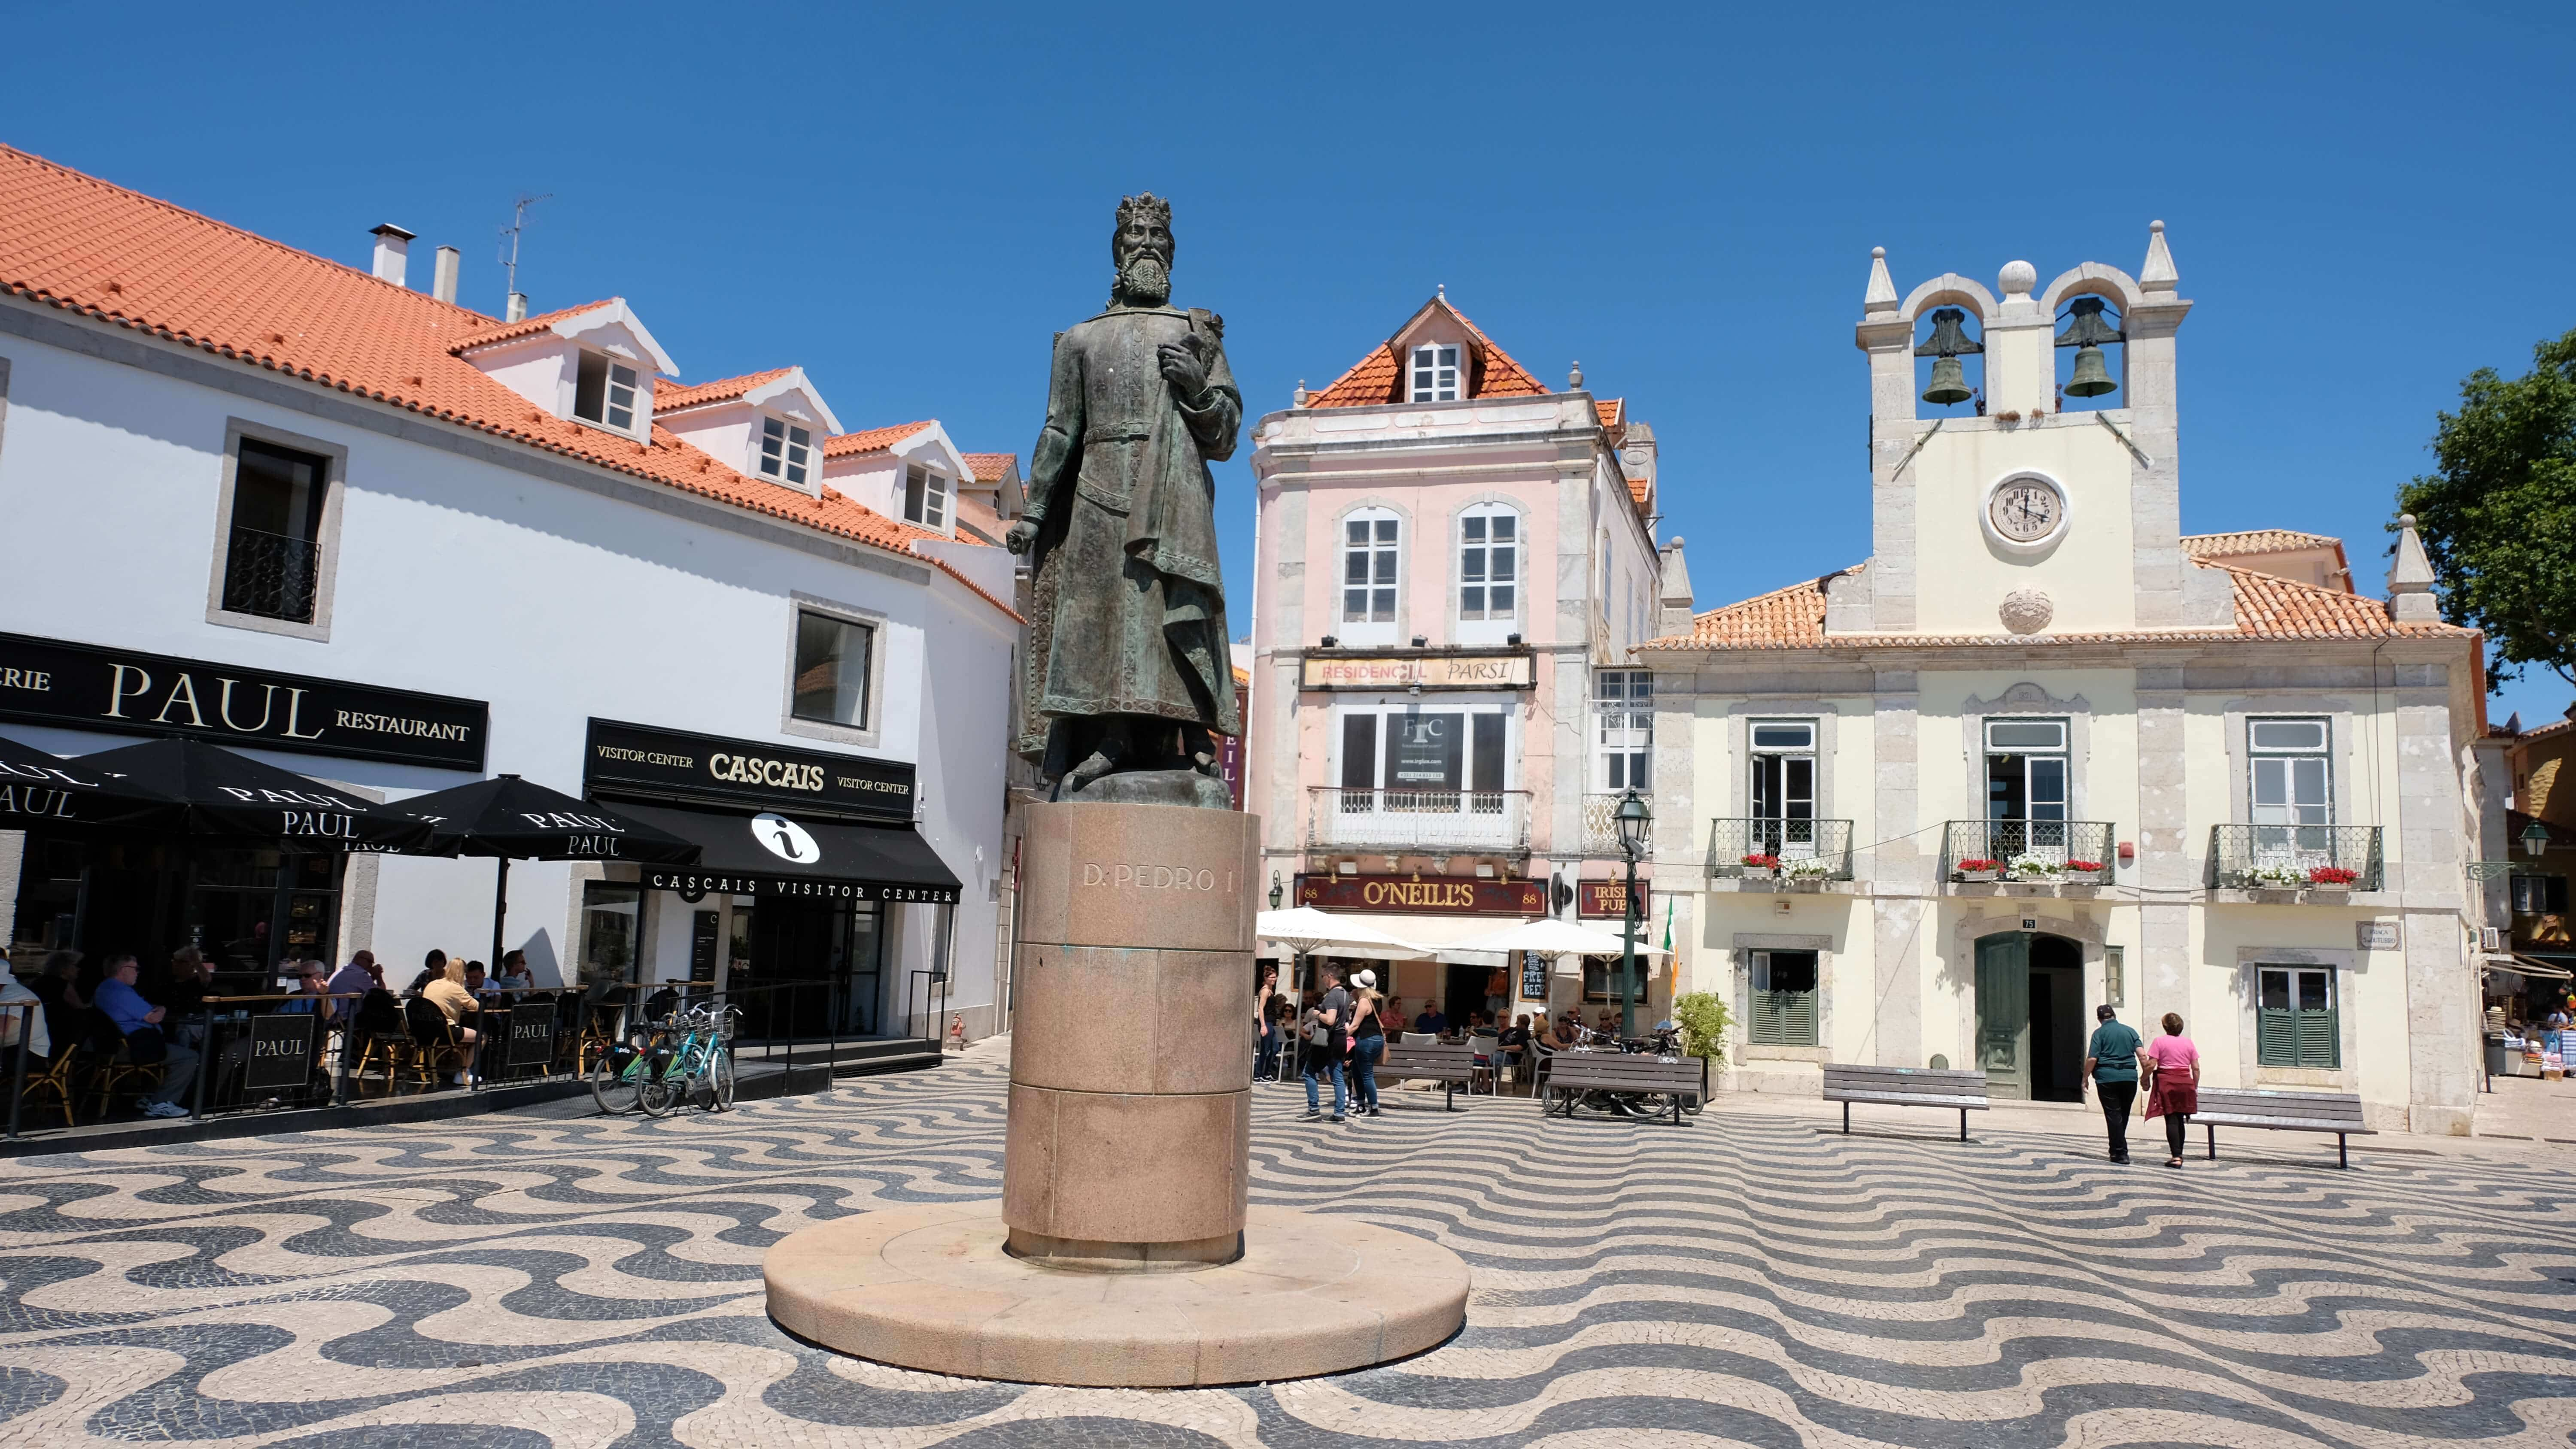 Start in the main square of Cascais(this is the square with O'Neil Irish pub, Paul's cafe and hotel Baia)